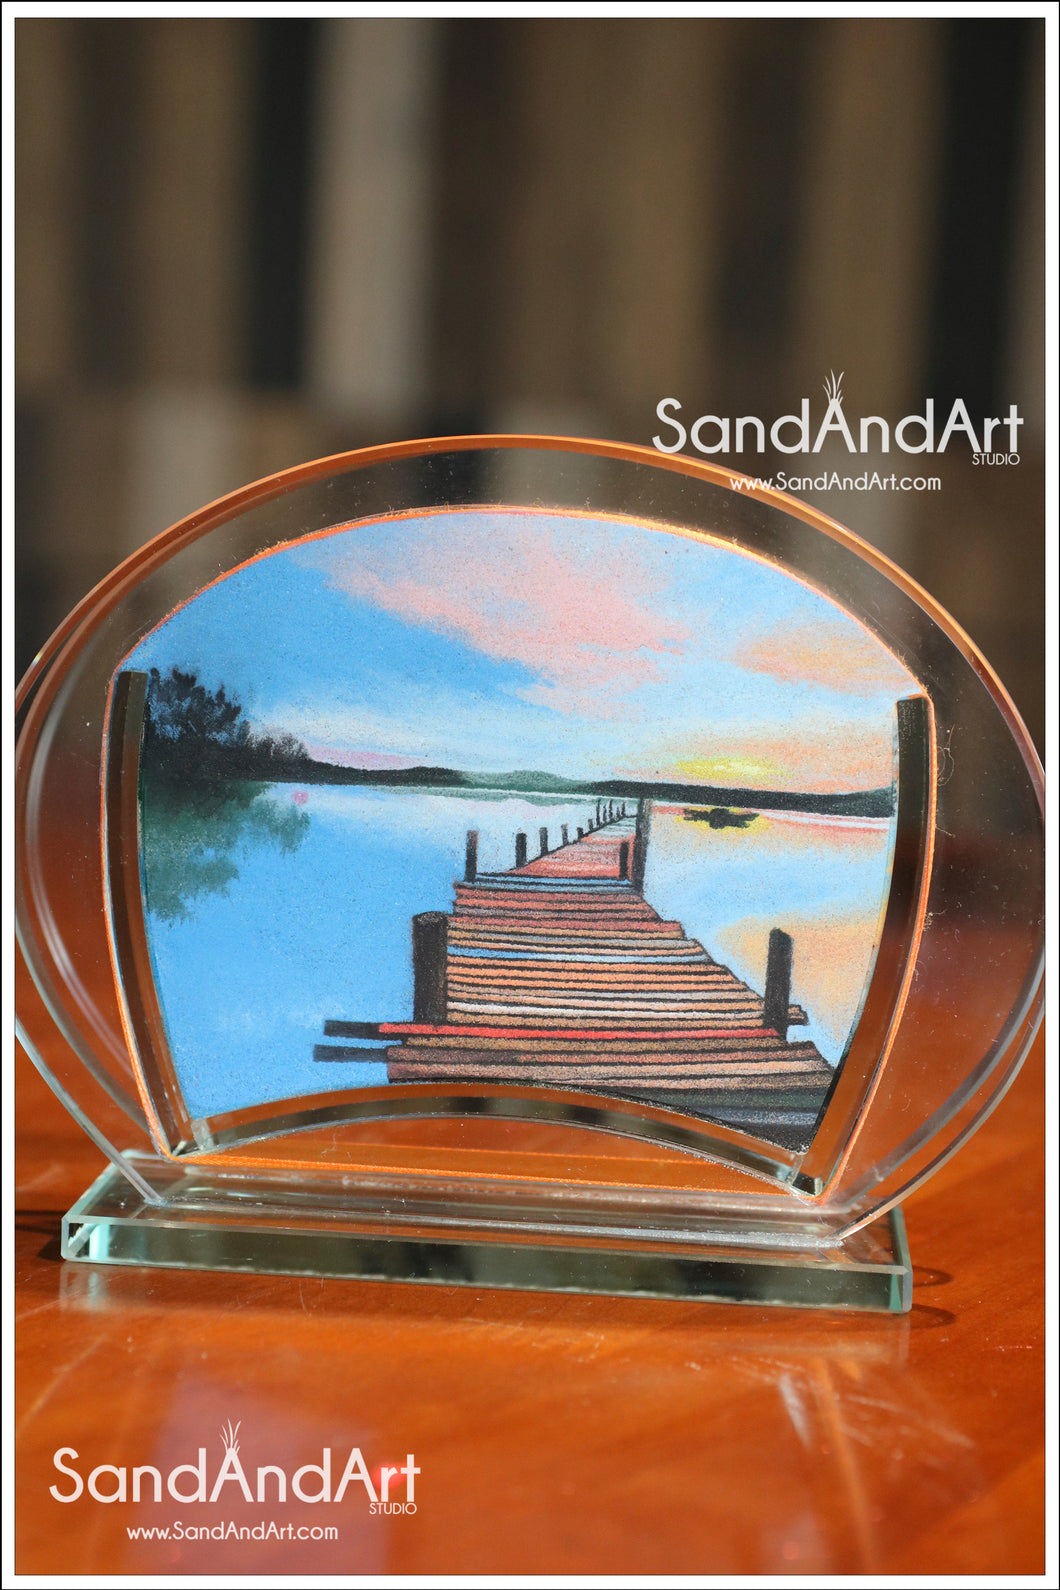 Custom Landscape Picture to Sand Portrait into Glass Vase 5.1